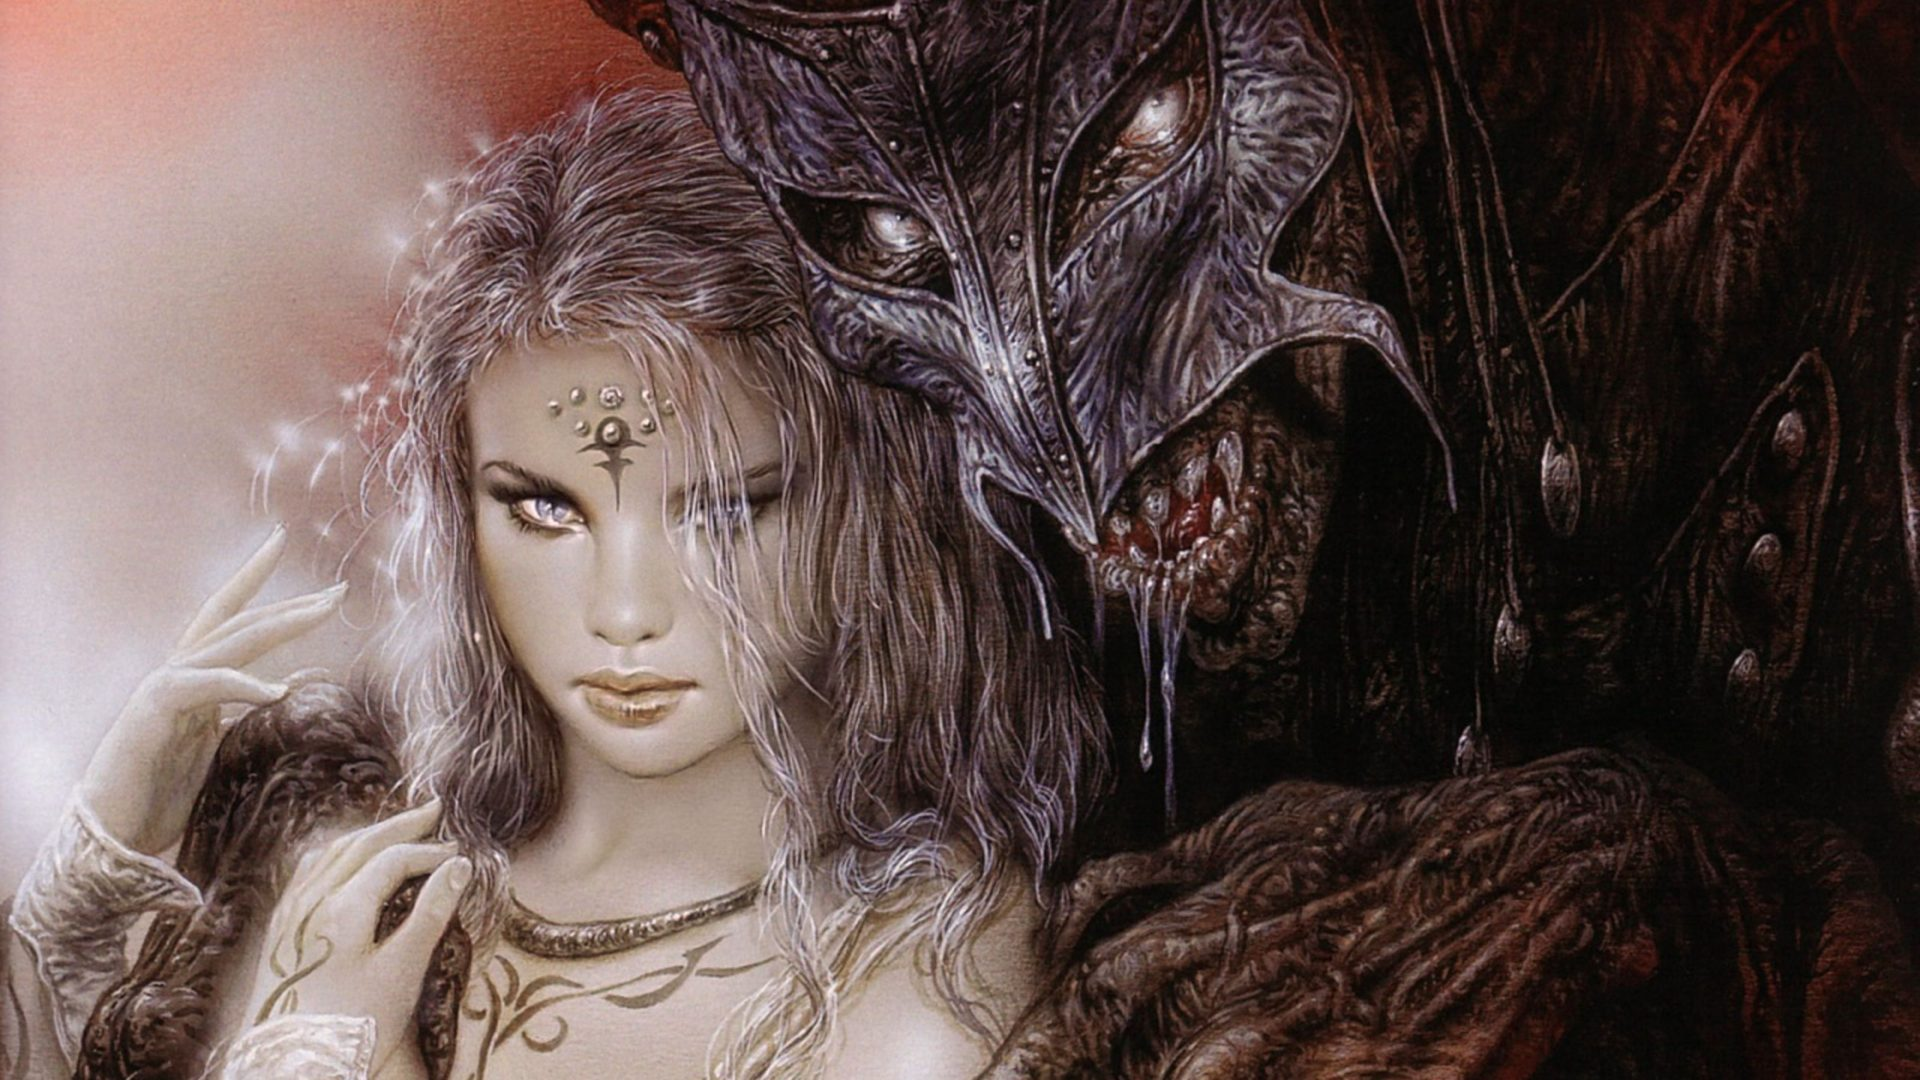 Classic Iphone Wallpaper For Iphone X Luis Royo Fantasy Dark Horror Demon Women Art Mask Monster